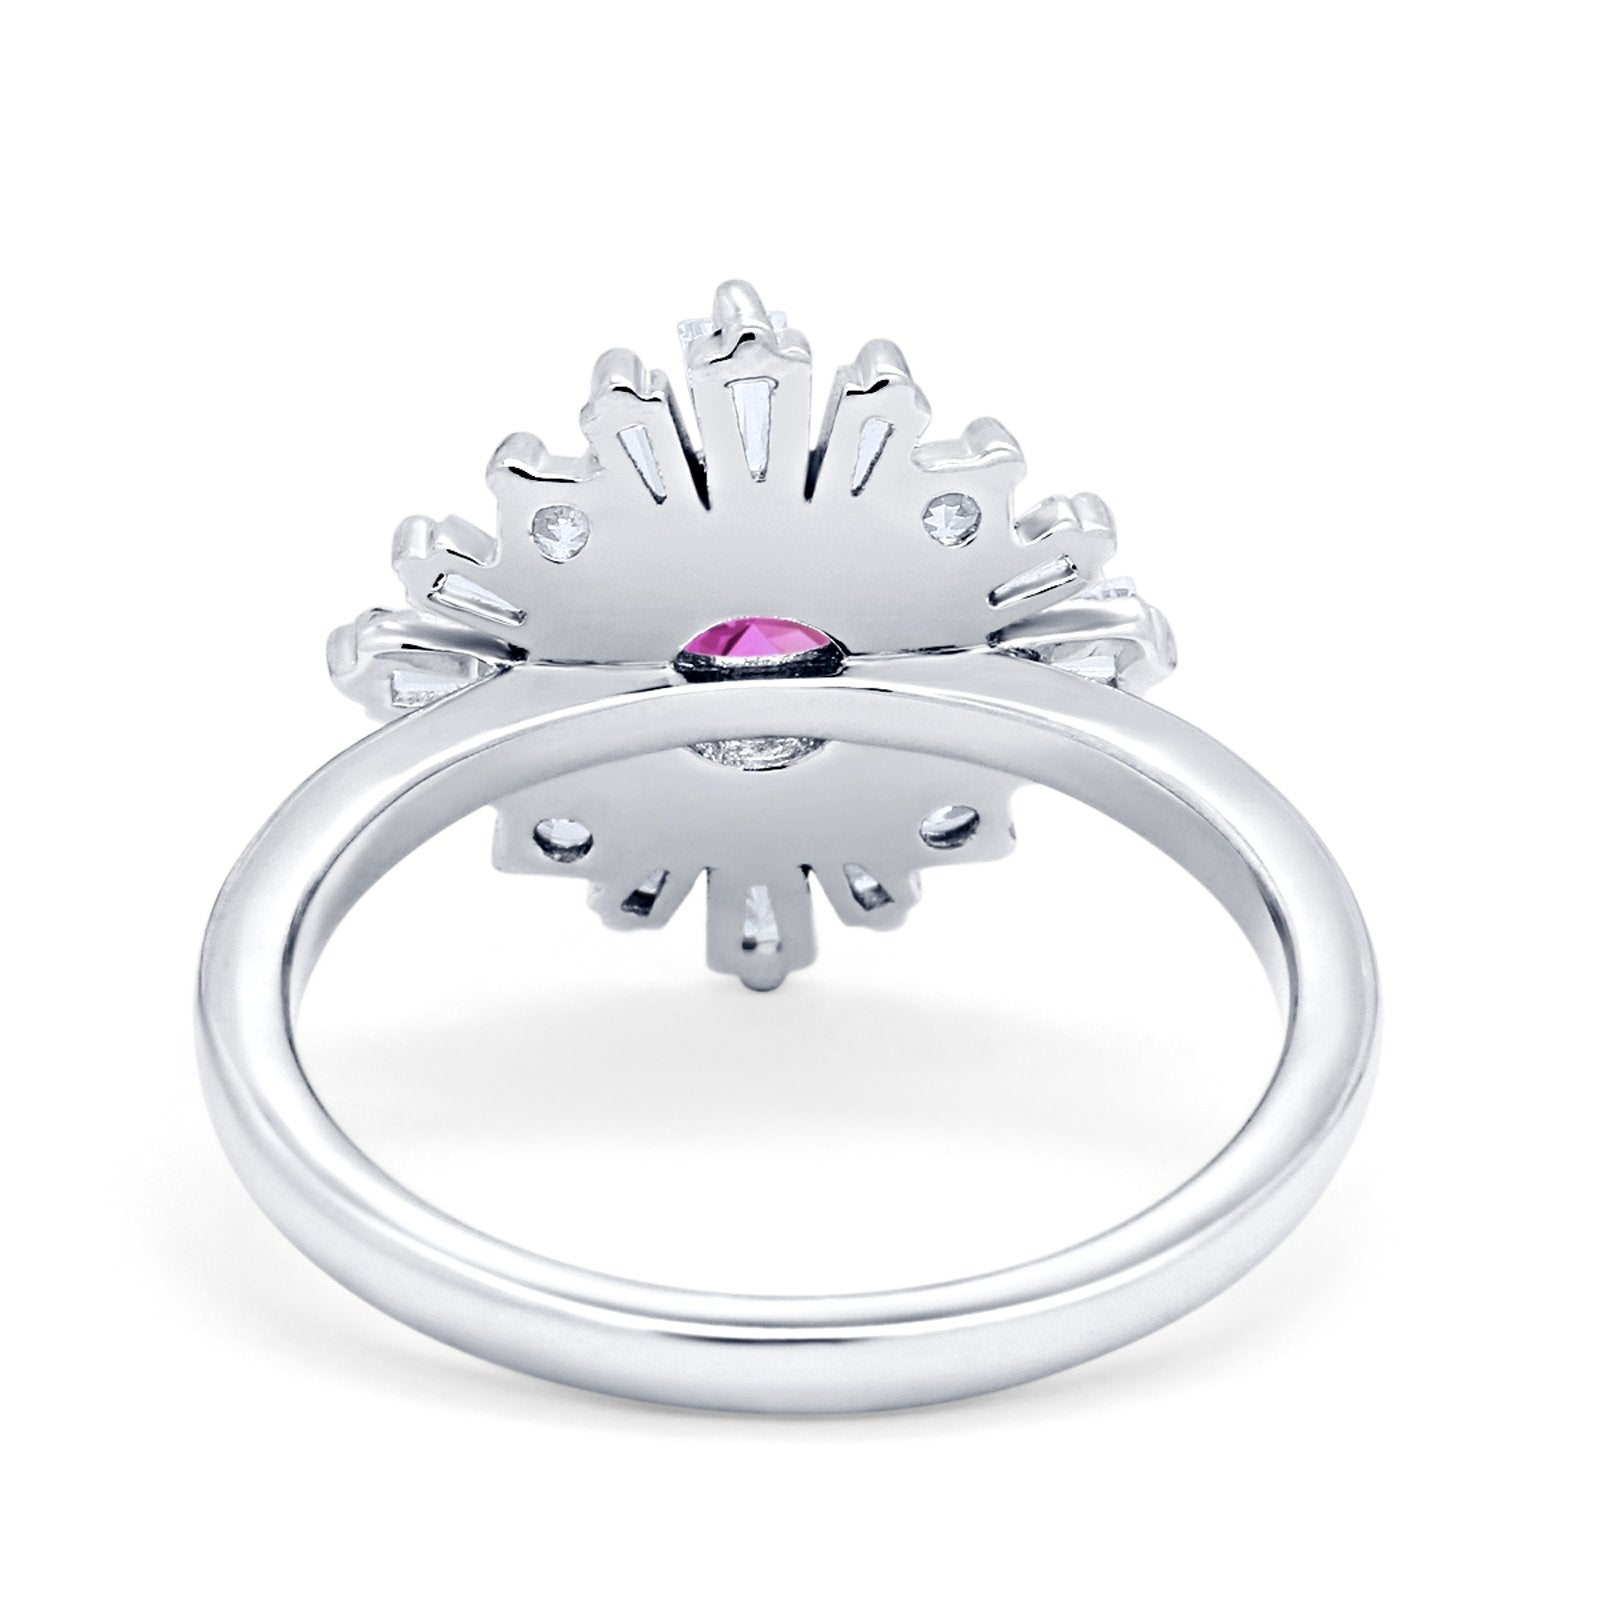 Halo Floral Style Vintage Wedding Ring Simulated Cubic Zirconia 925 Sterling Silver